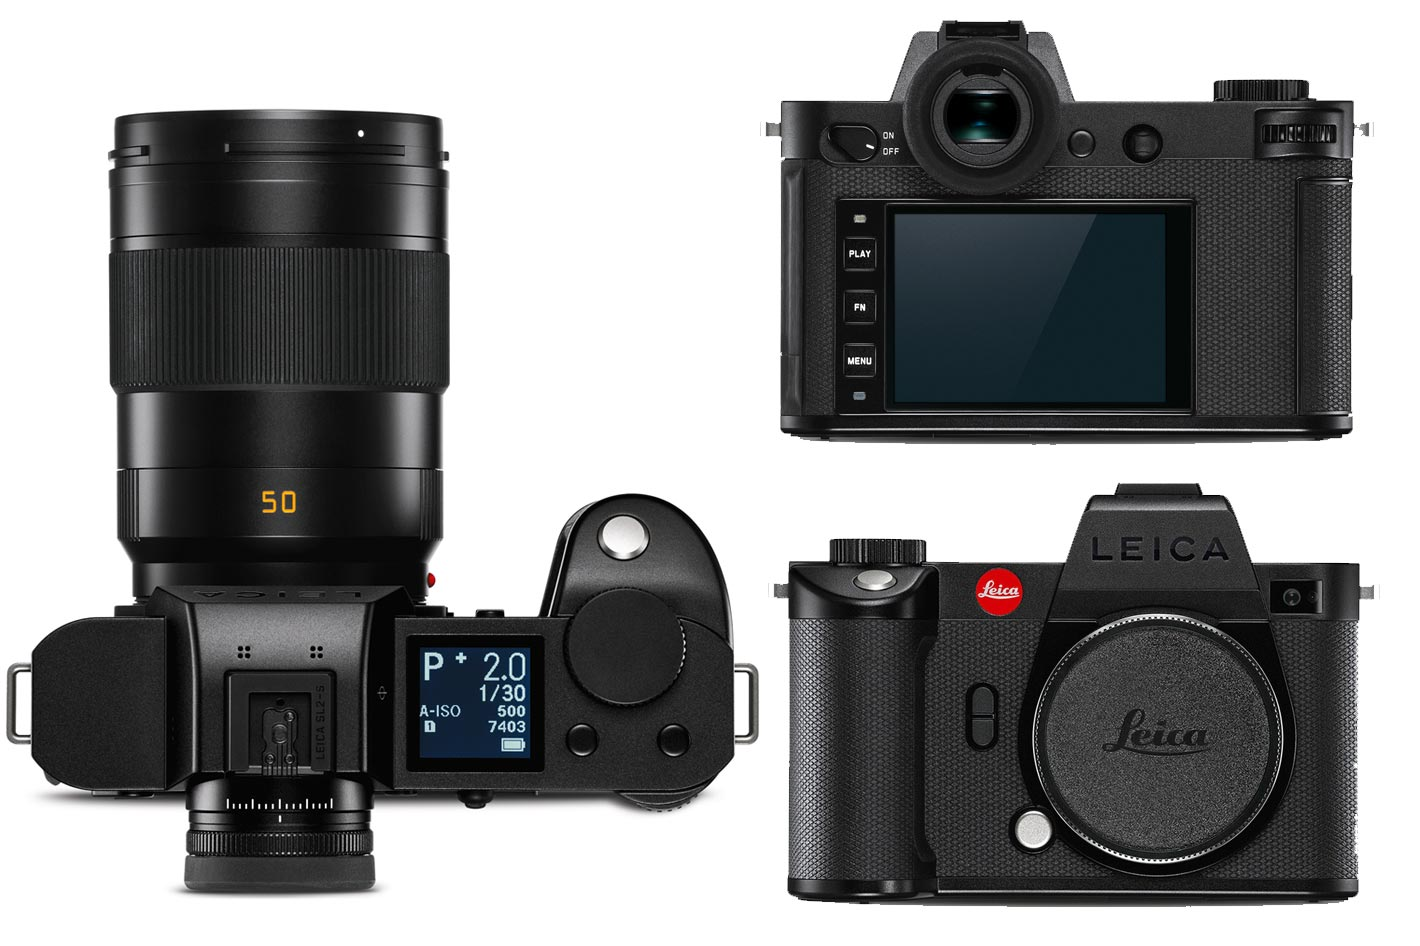 Leica SL2-S: video-centric camera takes photography seriously